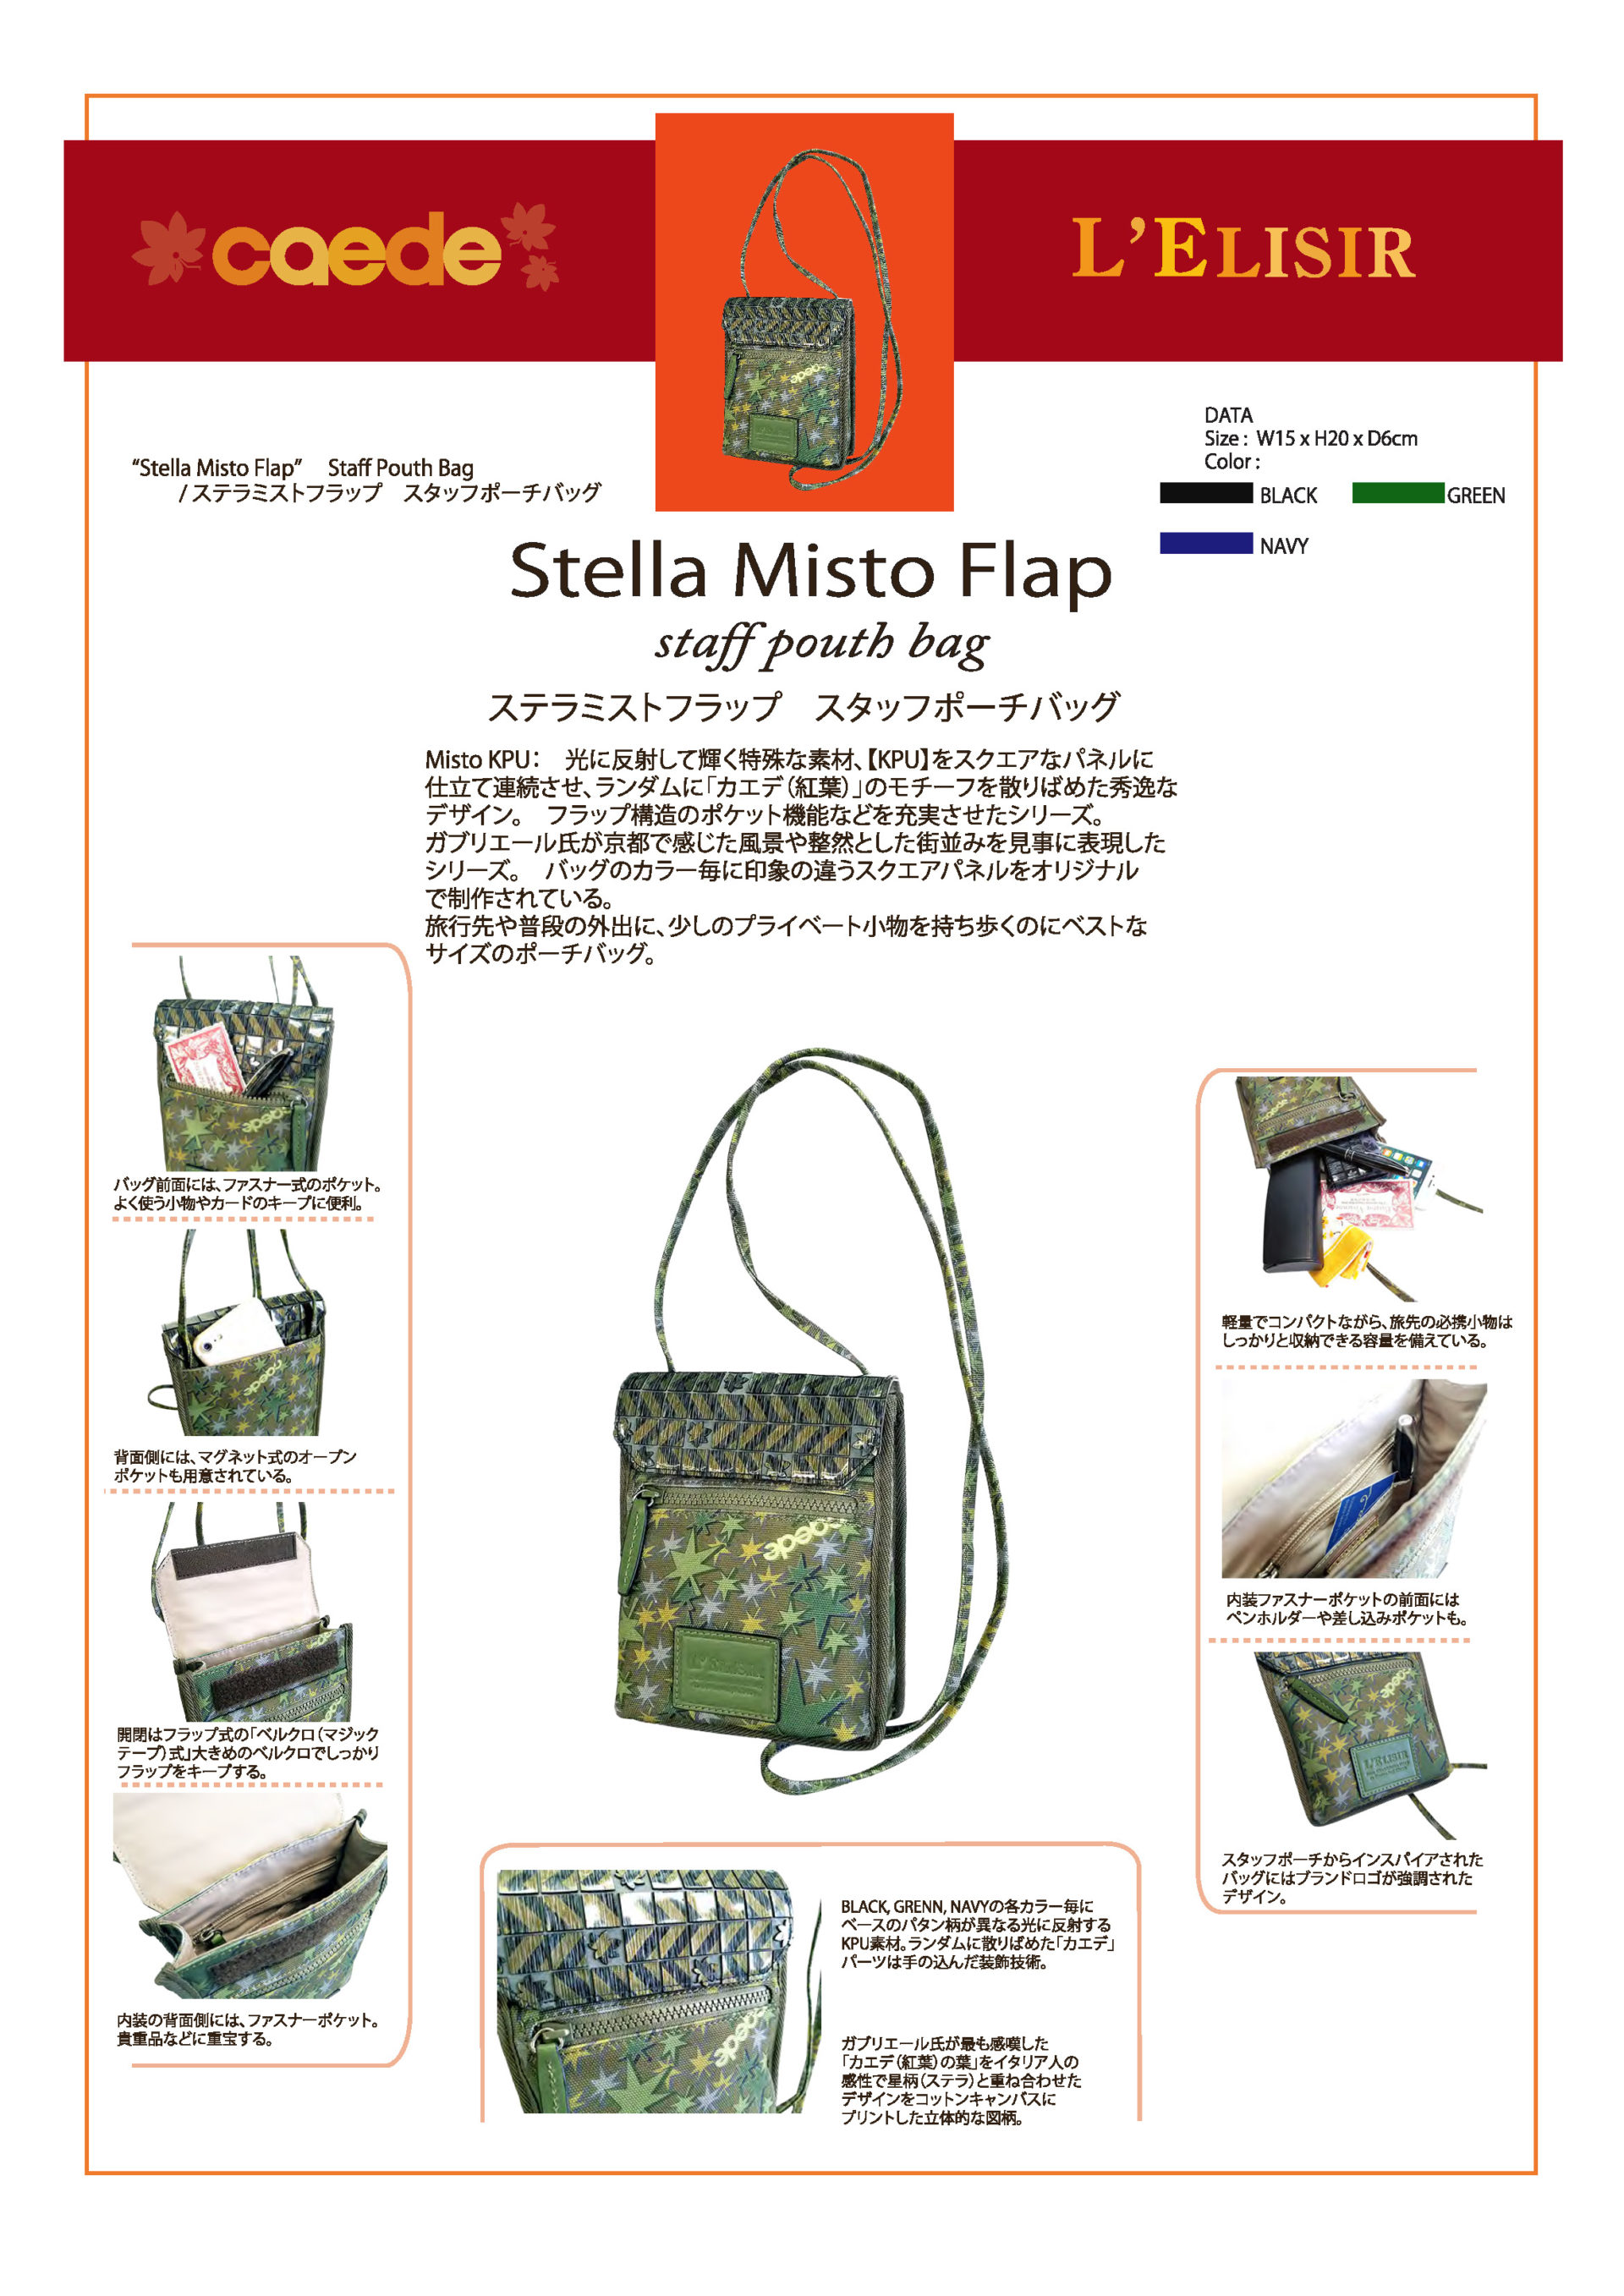 Stella Misto Flap Staff Pouth Bag | caede京都Collection